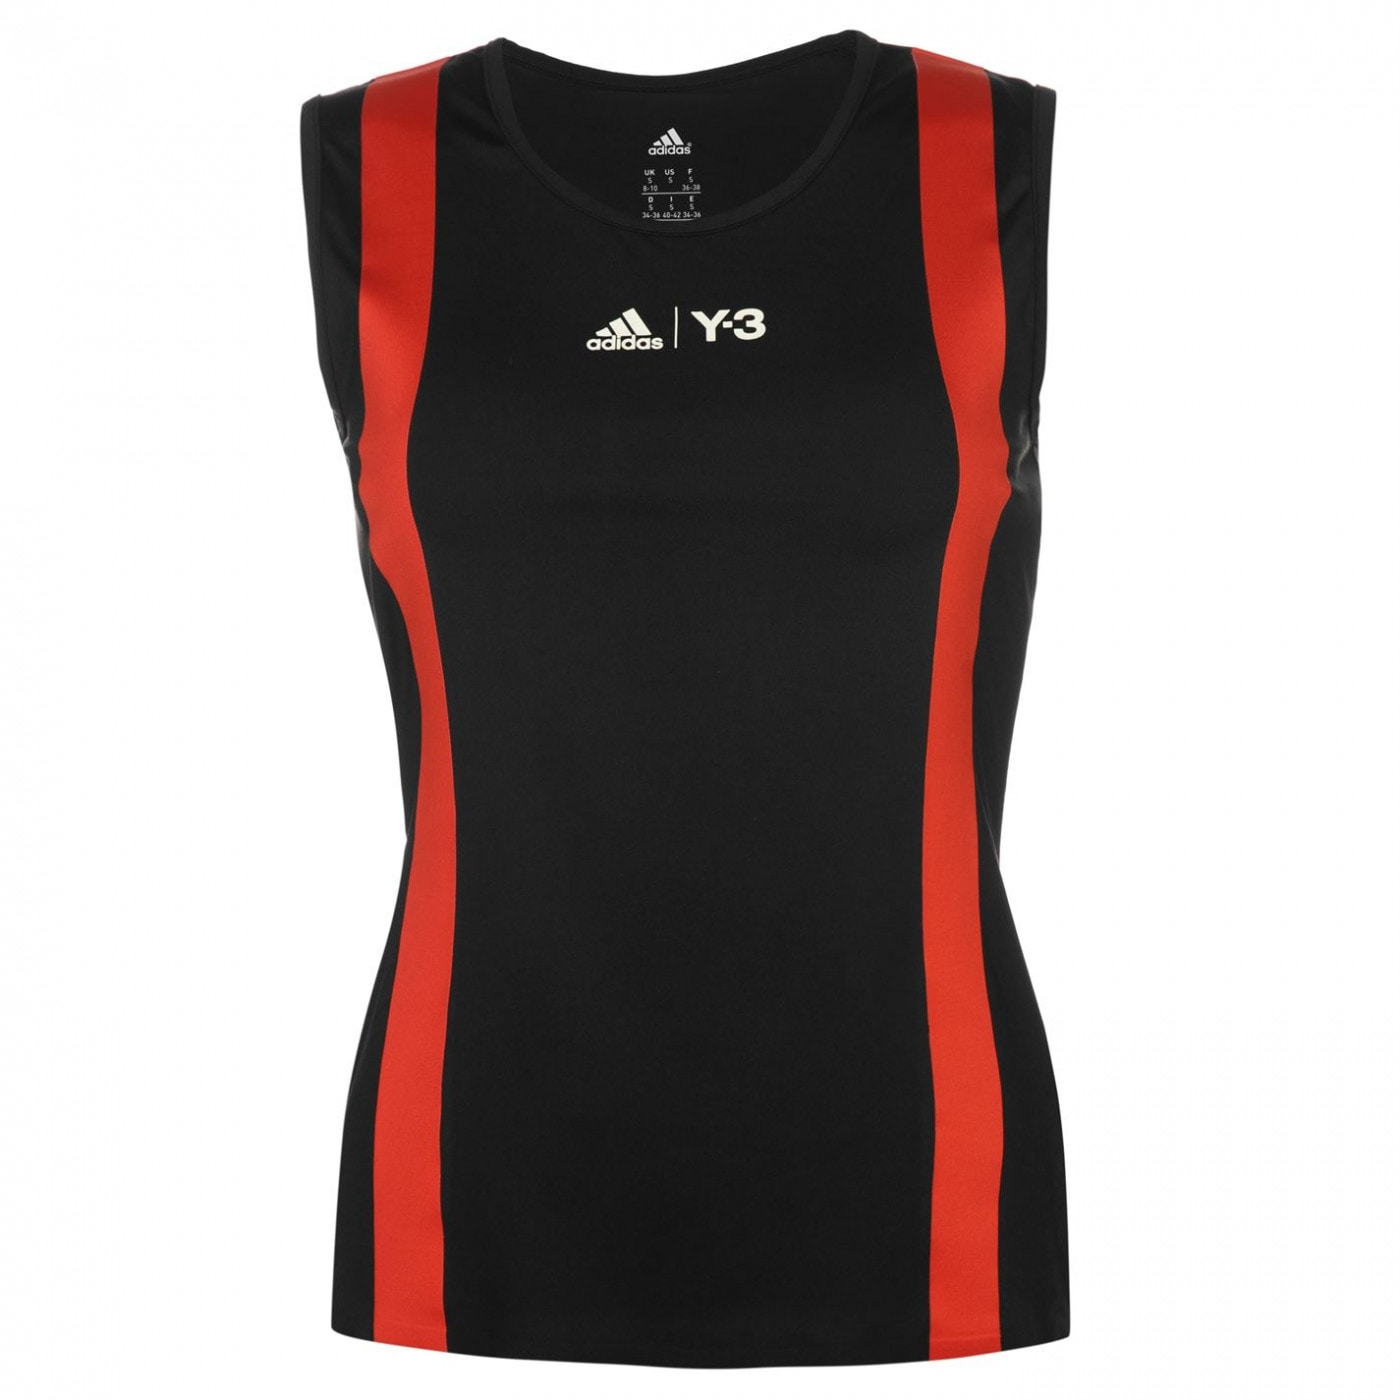 Adidas RGY3 Tennis Tank Top Ladies